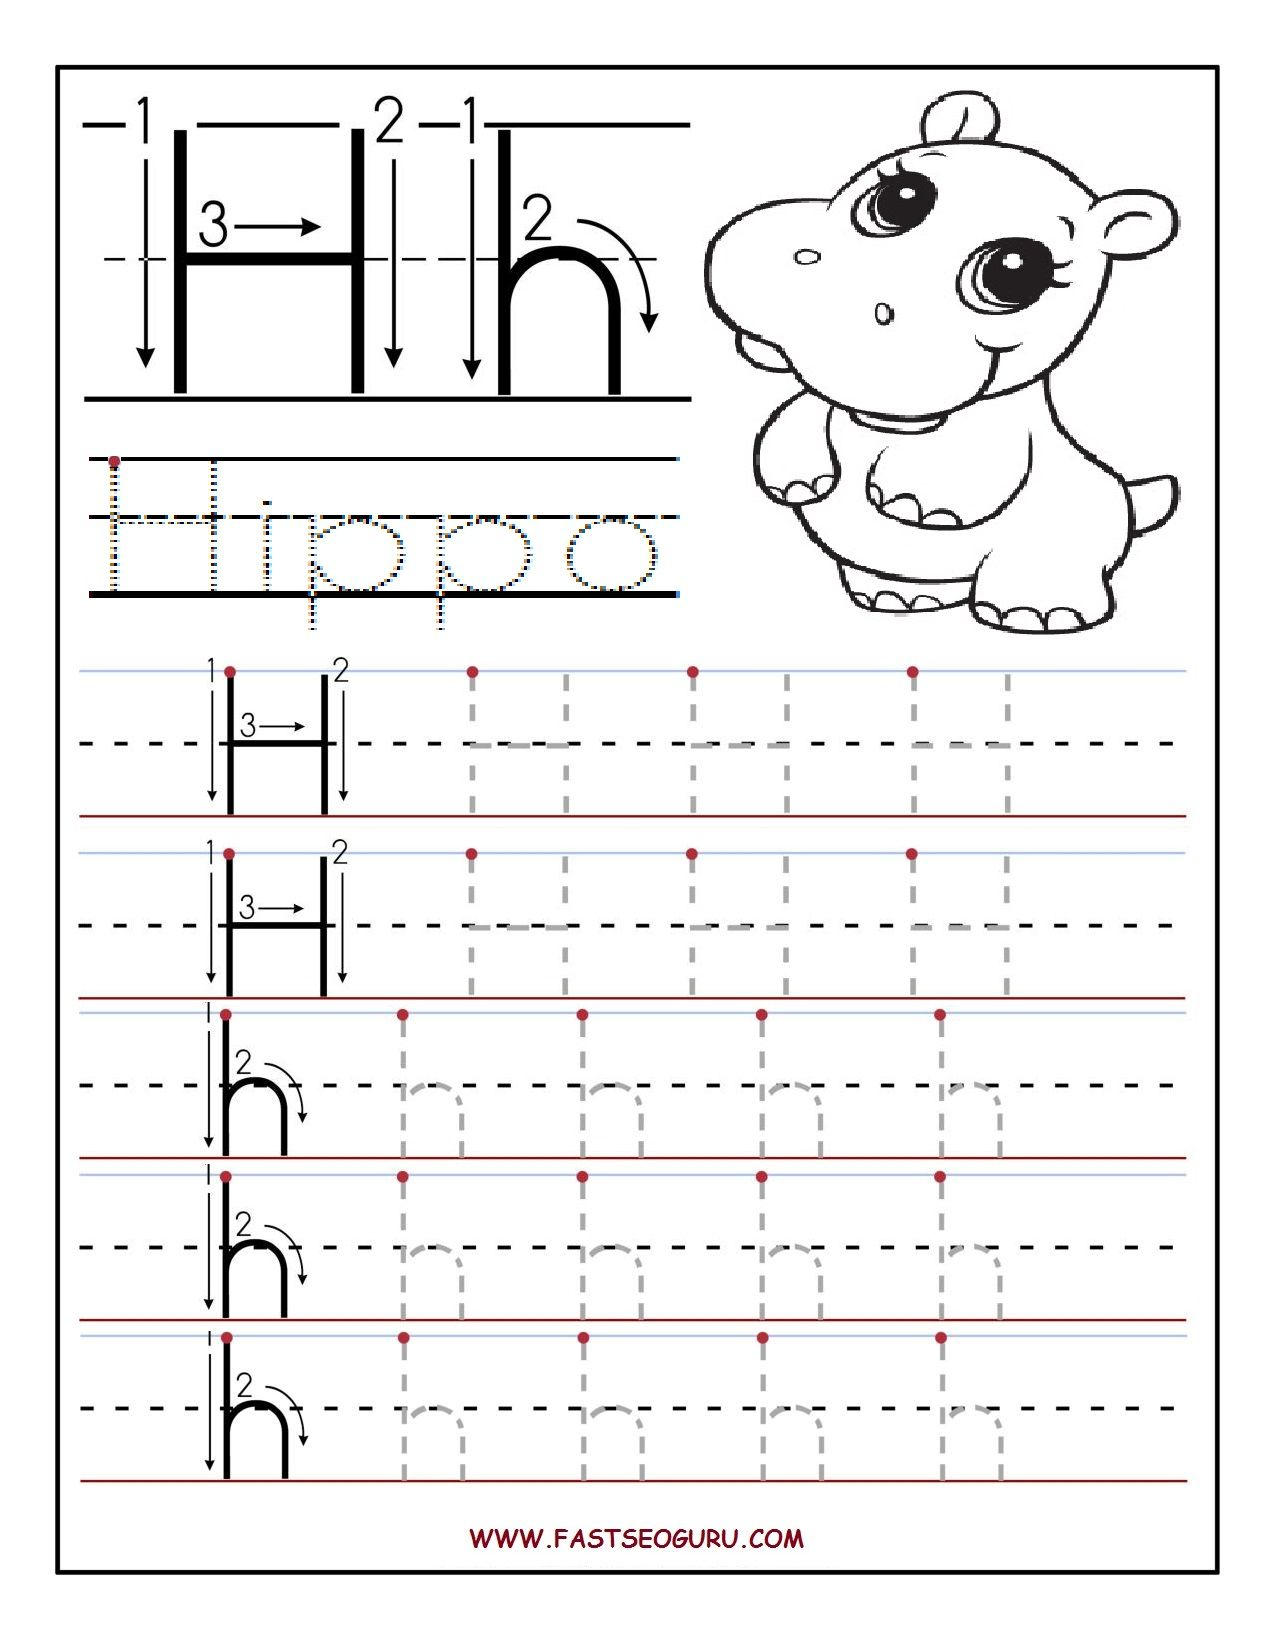 Printable letter H tracing worksheets for preschool | Projects by ...